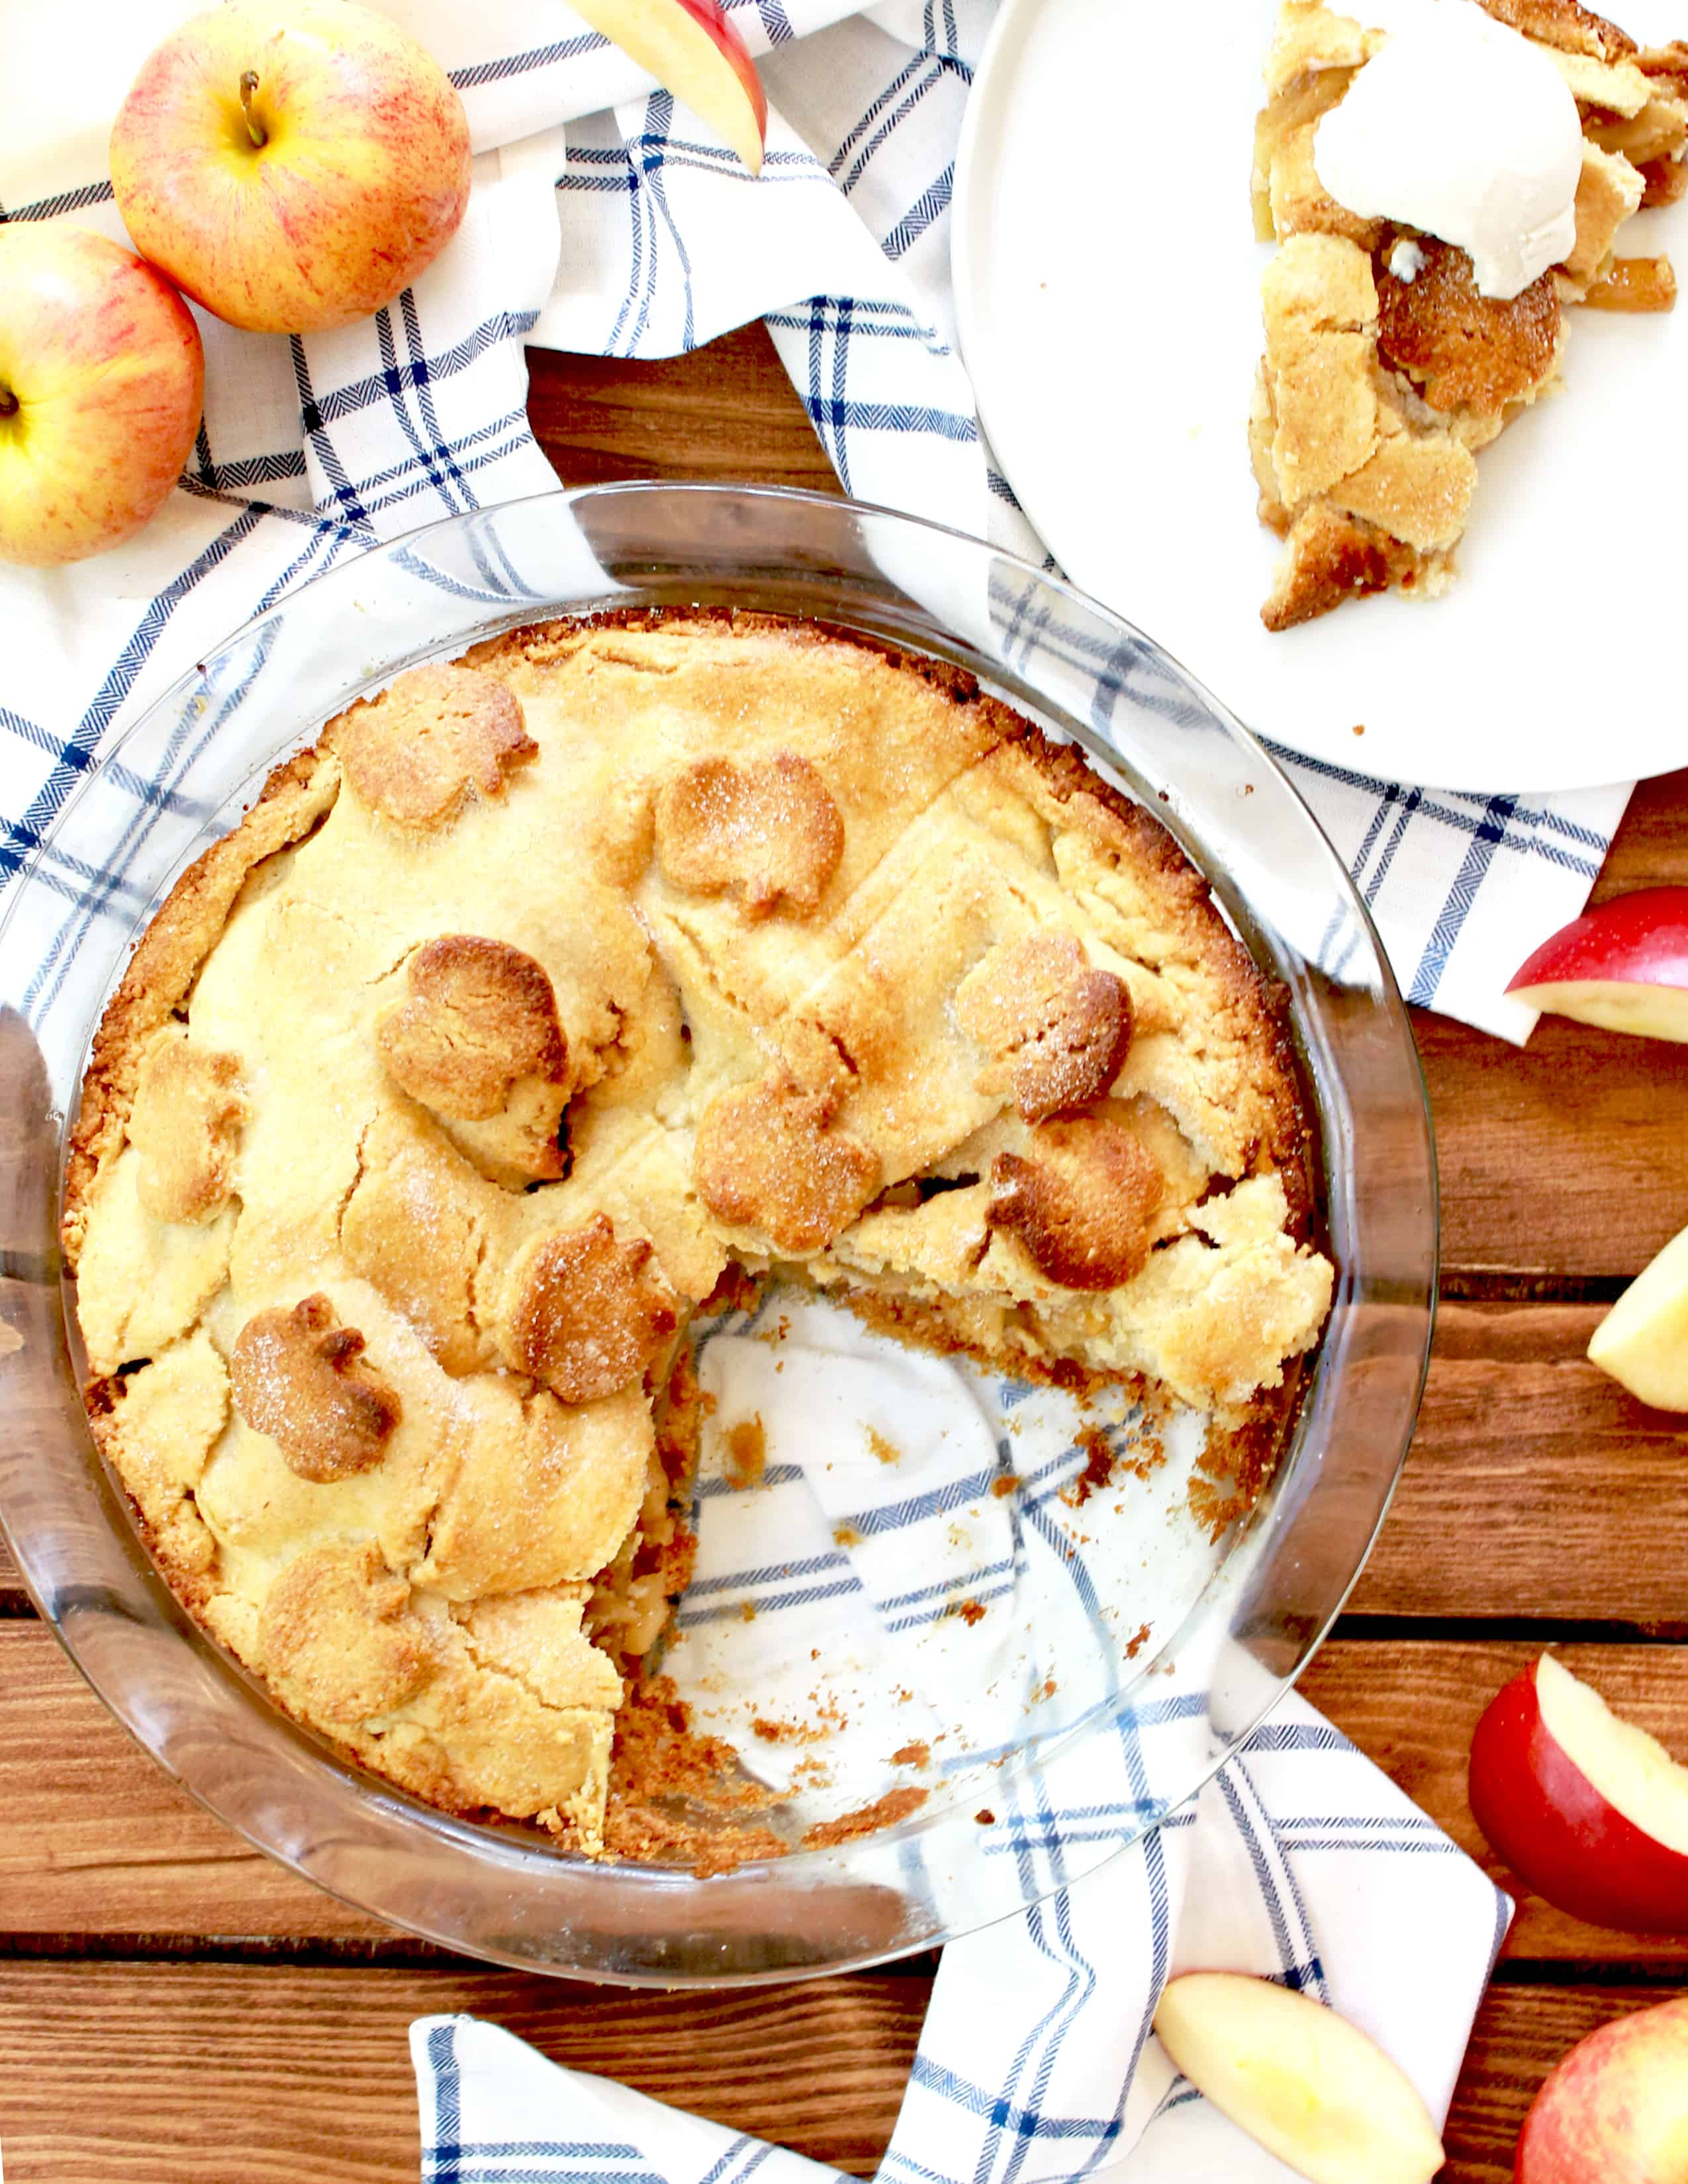 rosh Hashanah healthy apple pie, Healthy Apple Pie, rosh Hashanah apple pie, rosh Hashanah desserts, apple pie, rosh Hashanah recipes, rosh hashana recipes, rosh Hashanah desserts, holiday recipes, holiday baking, healthy rosh Hashanah recipes, tasty recipe